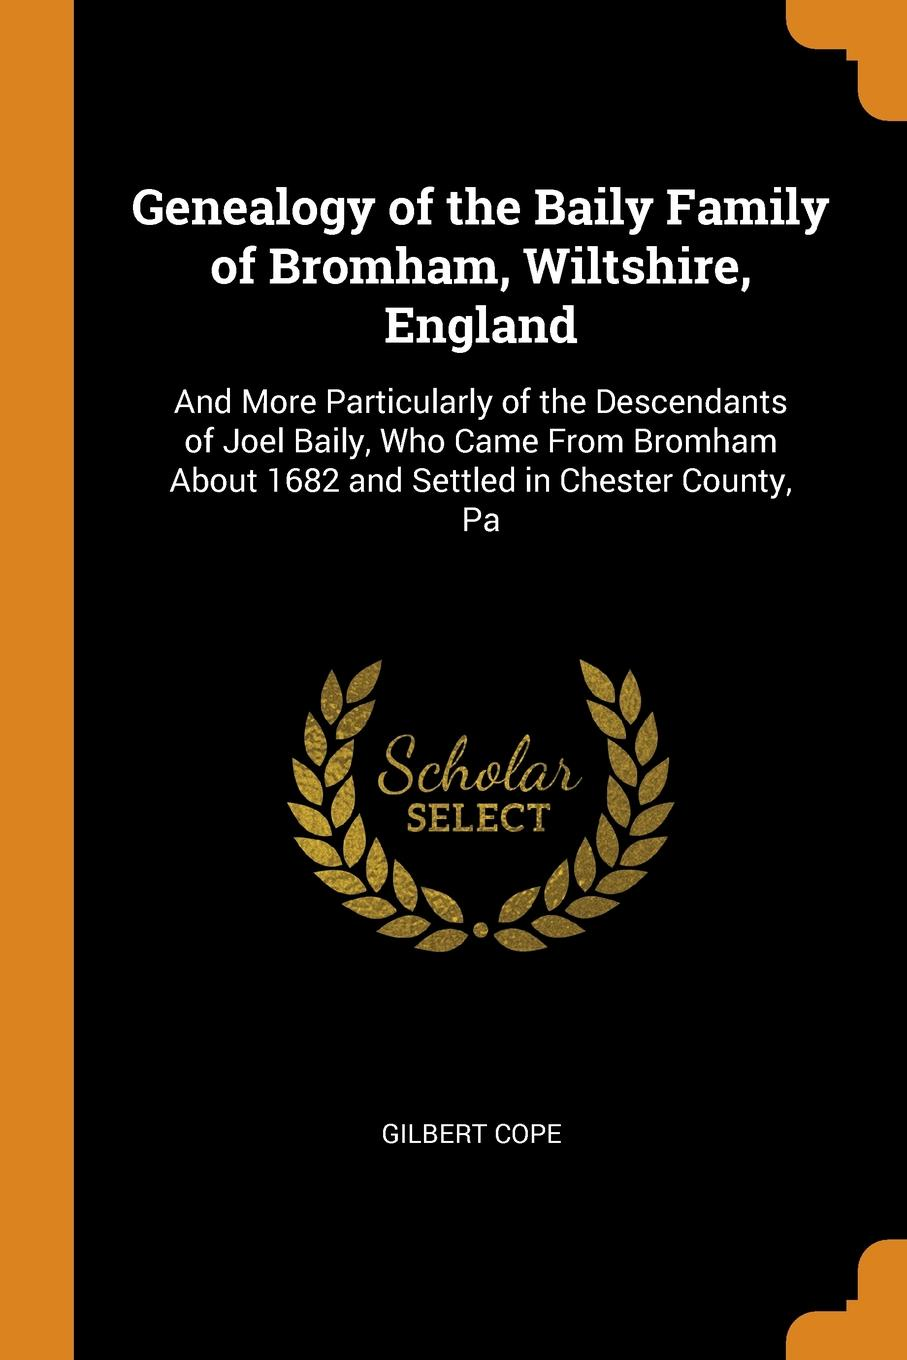 Genealogy of the Baily Family of Bromham, Wiltshire, England. And More Particularly of the Descendants of Joel Baily, Who Came From Bromham About 1682 and Settled in Chester County, Pa. Gilbert Cope